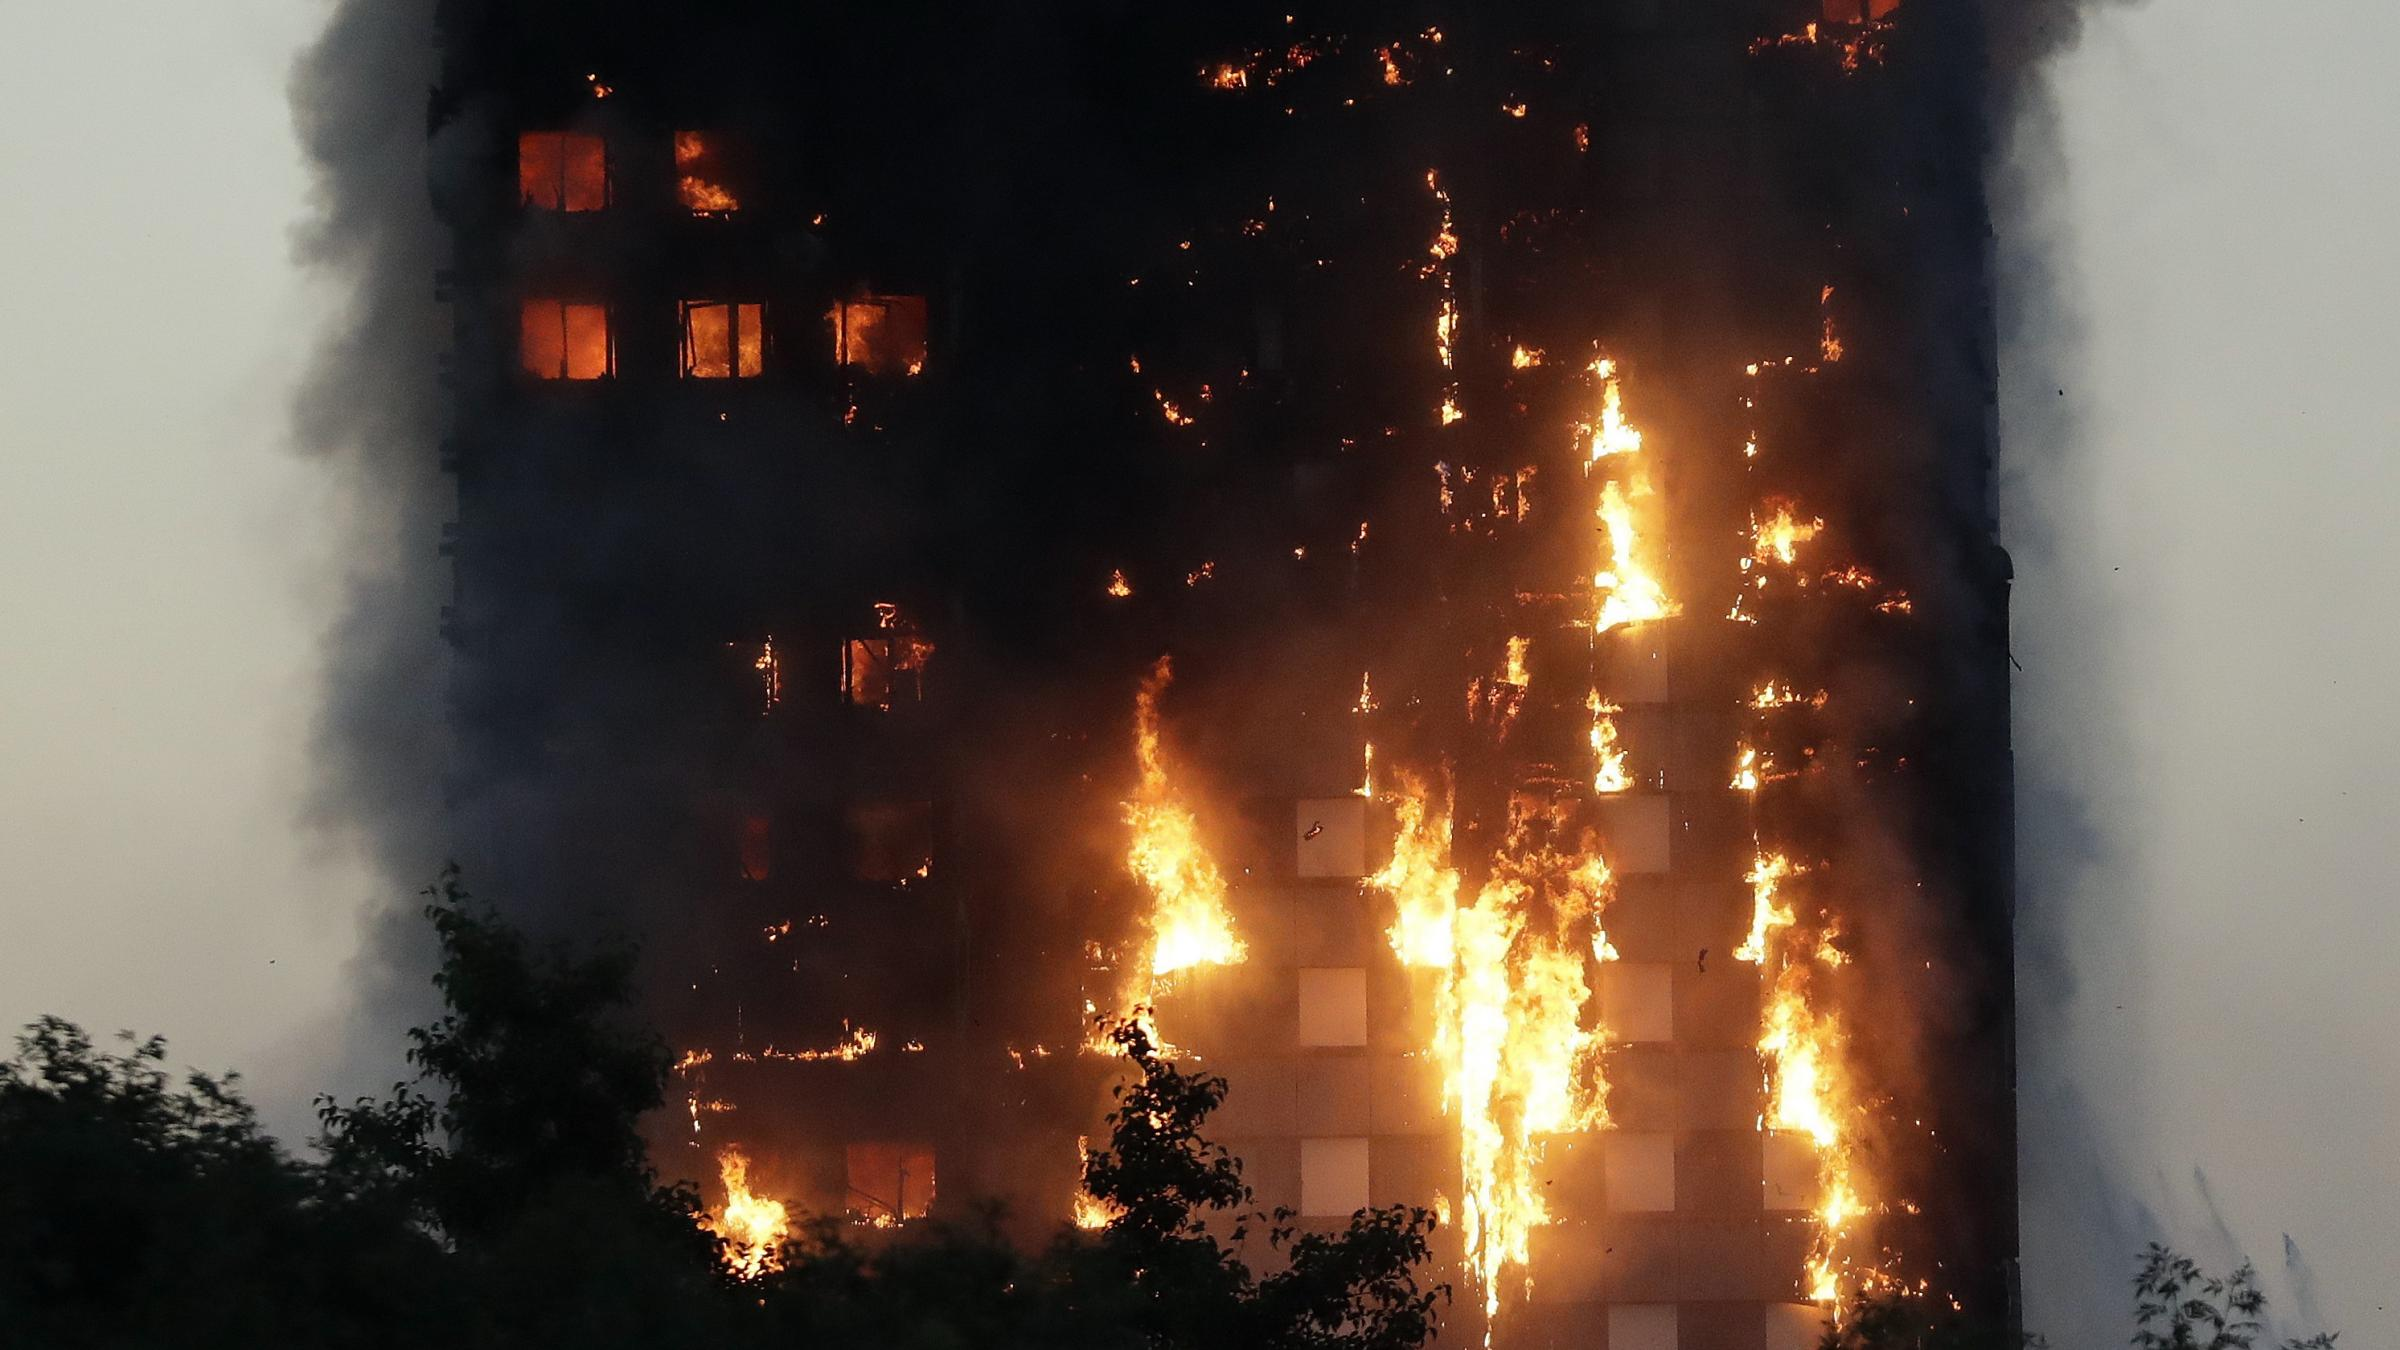 Several killed, more than 60 hurt in London fire